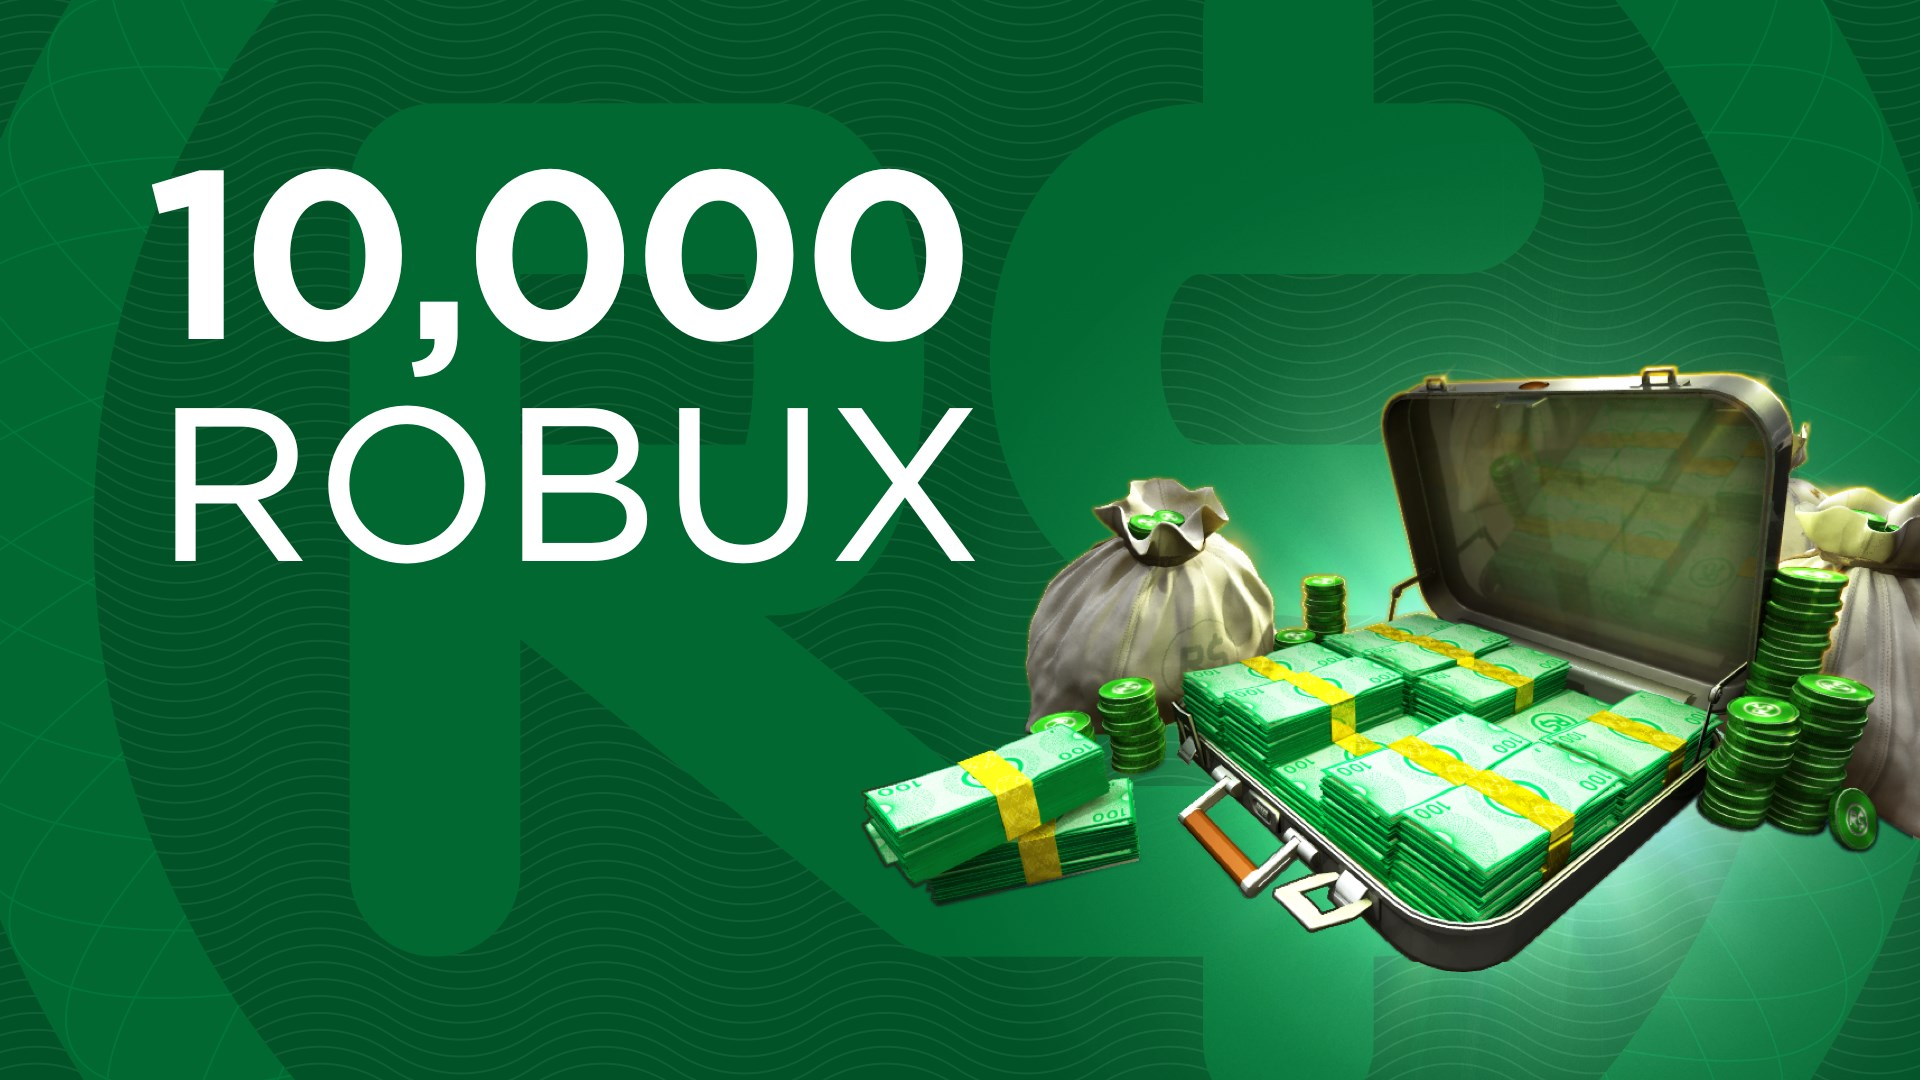 Buy 10000 Robux For Xbox Microsoft Store En Gb - 10 in robux